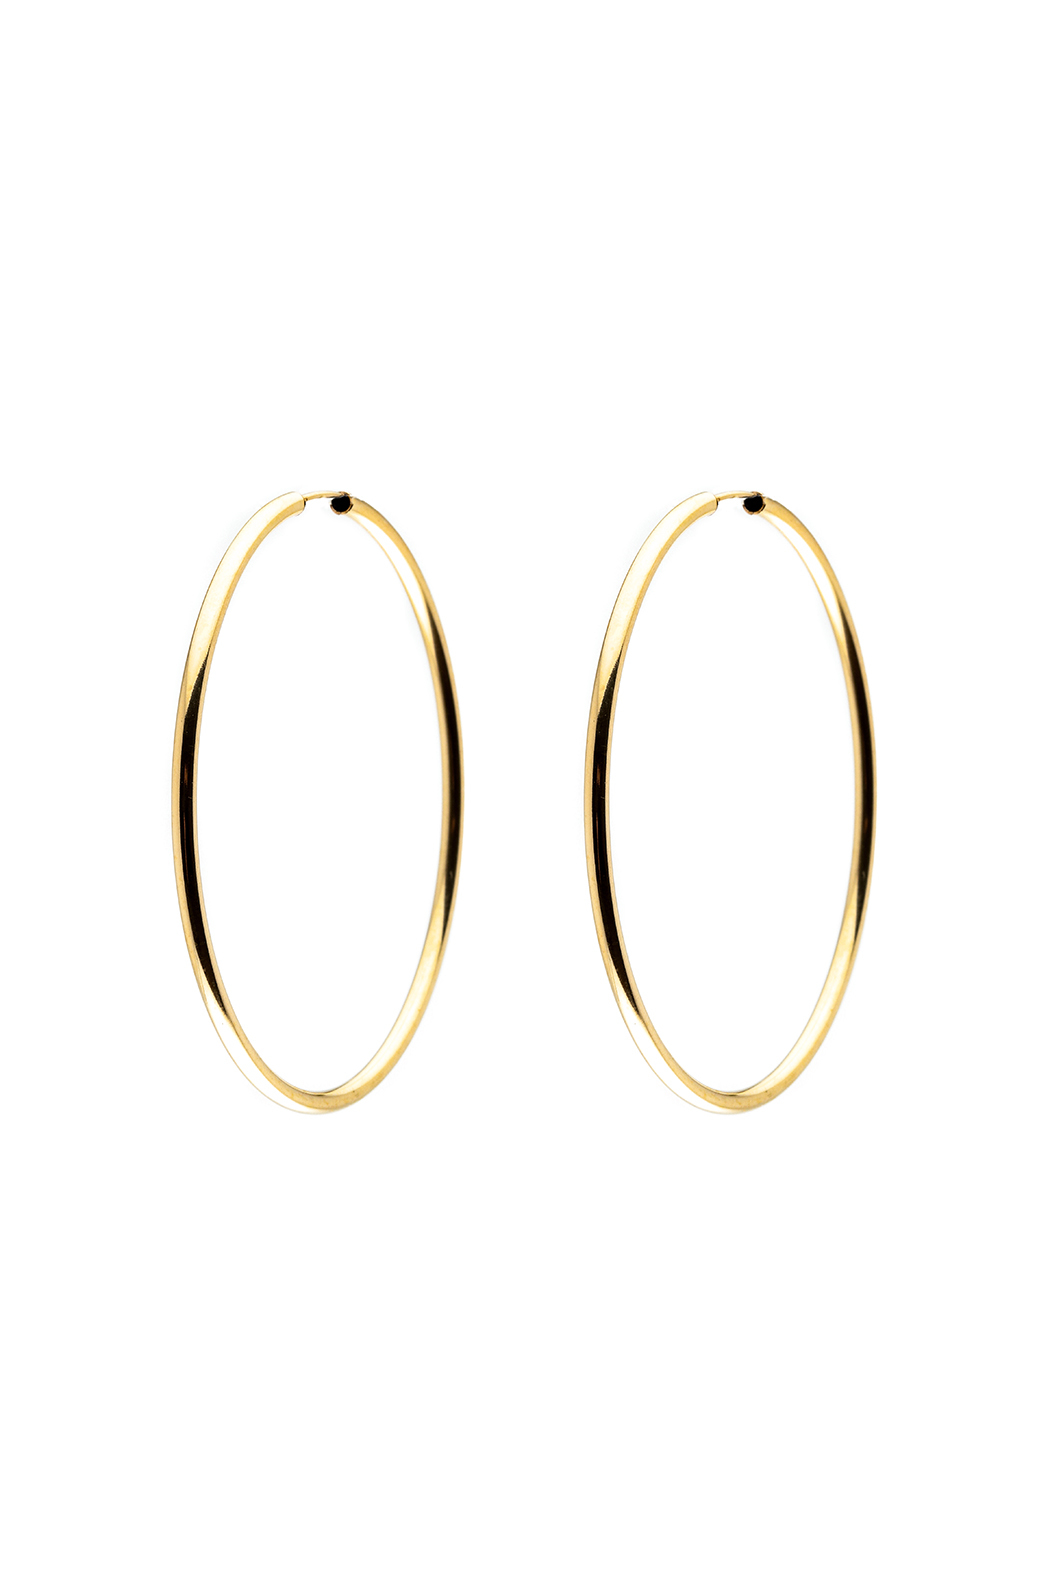 Light Years Jewelry Gold Endless Hoops - Main Image